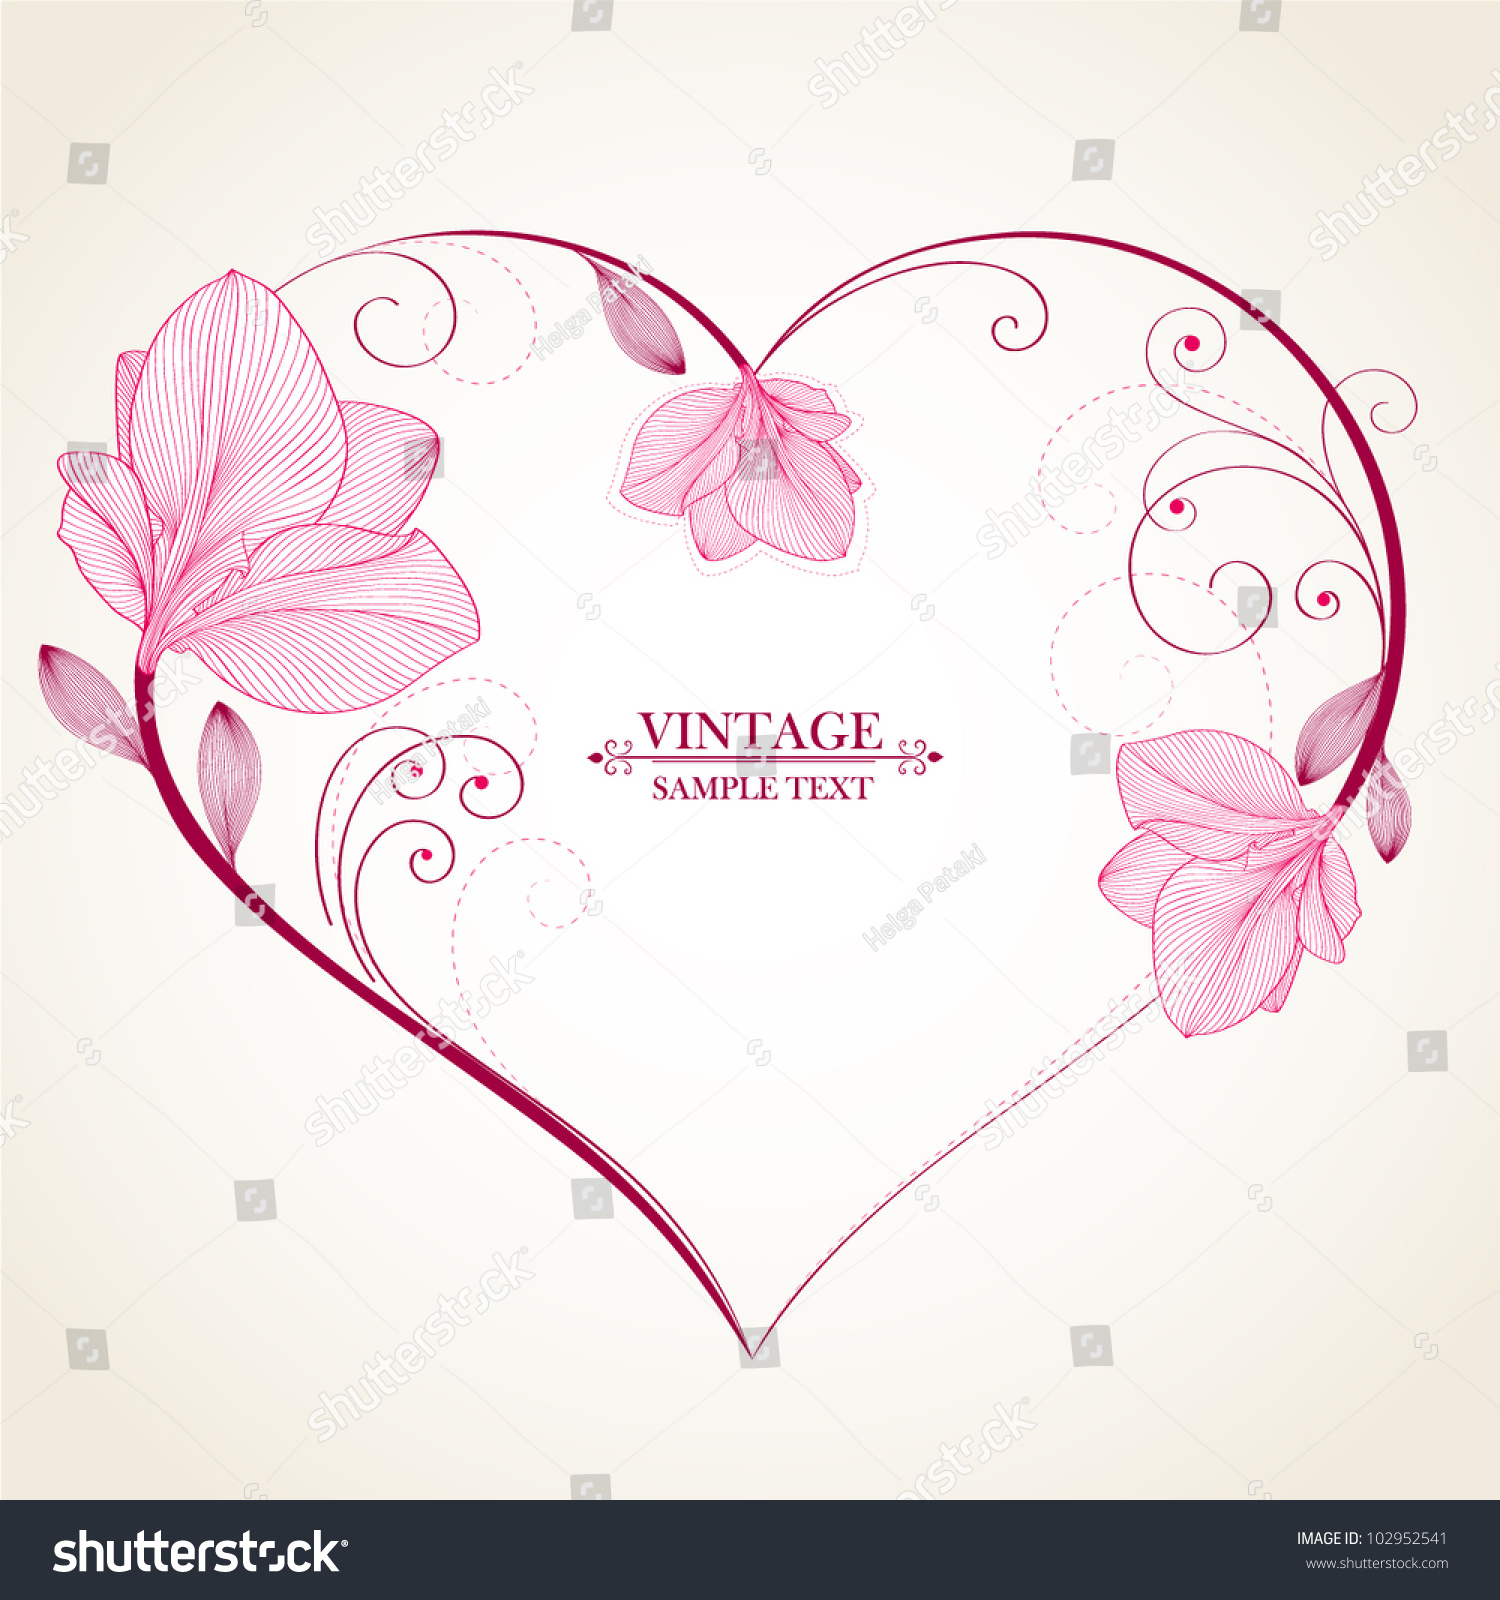 Abstract Flower Background With Decoration Elements For: Handdrawing Abstract Floral Background Vector Heart Stock